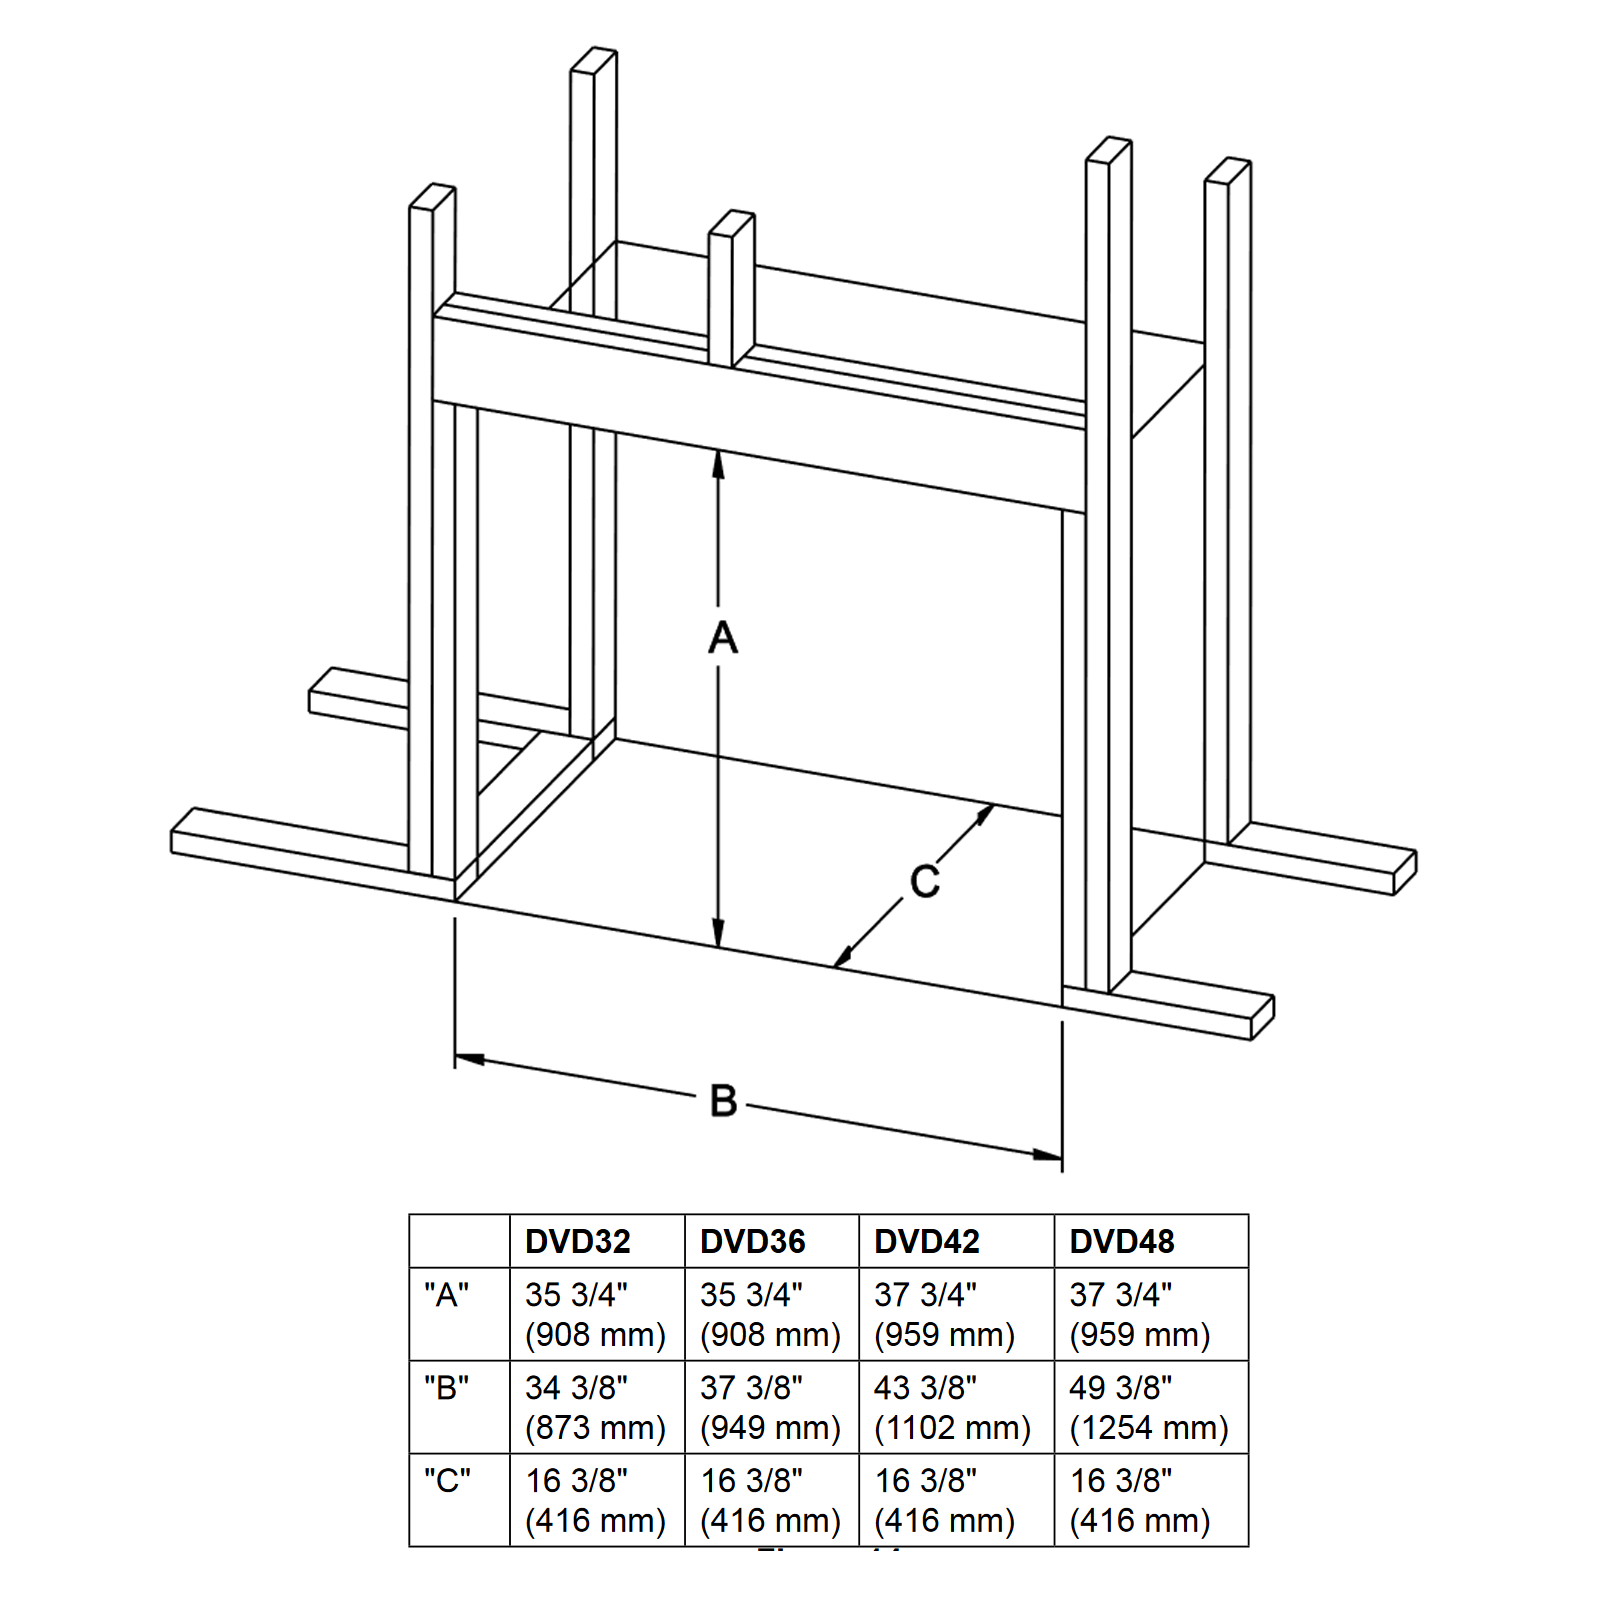 DVD42 Technical Drawing 2